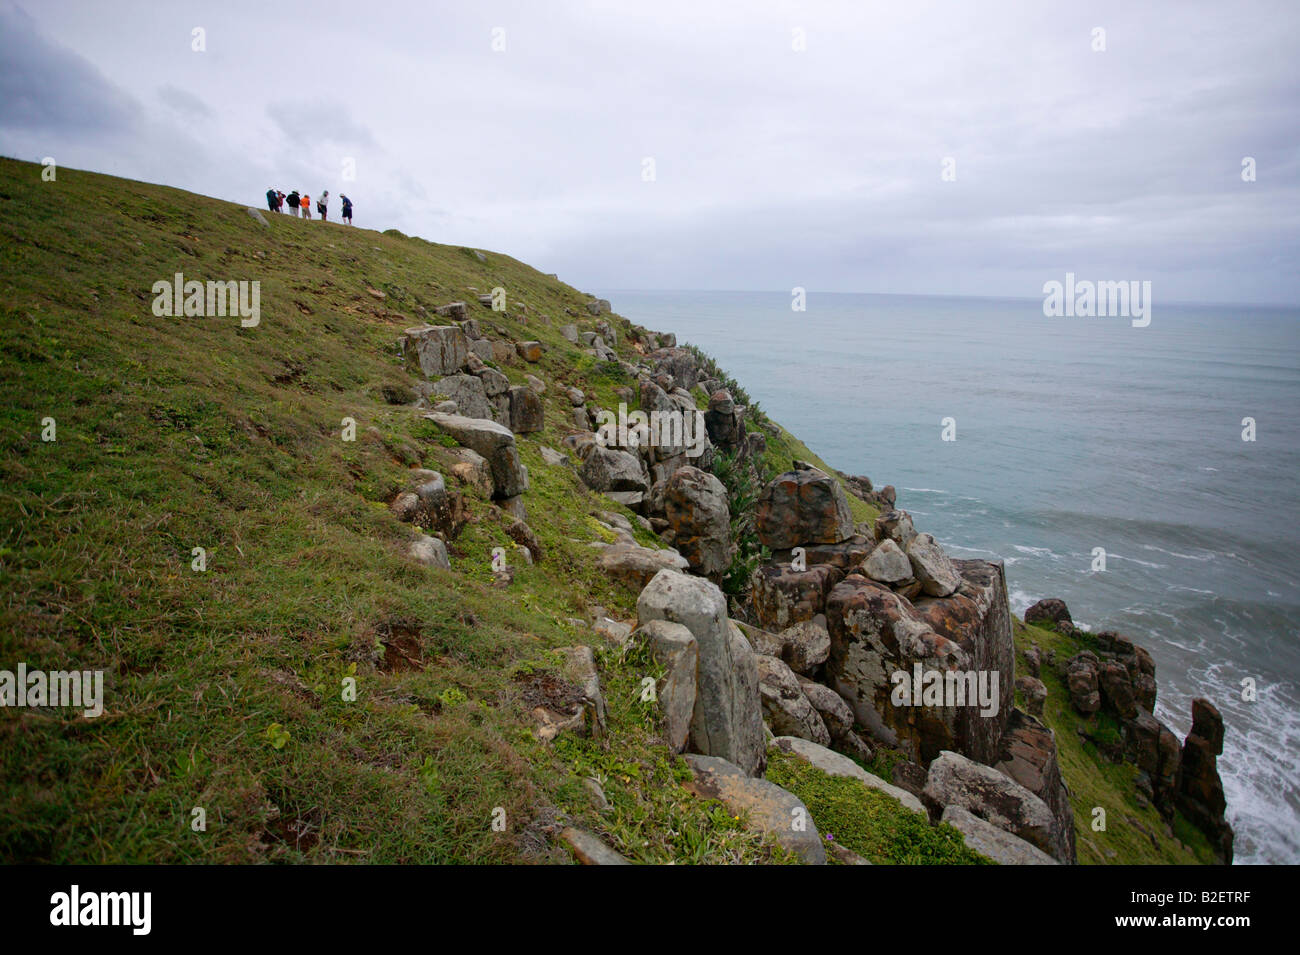 A group of sightseers on a grassy slope overlooking the Morgan bay cliffs and sea - Stock Image